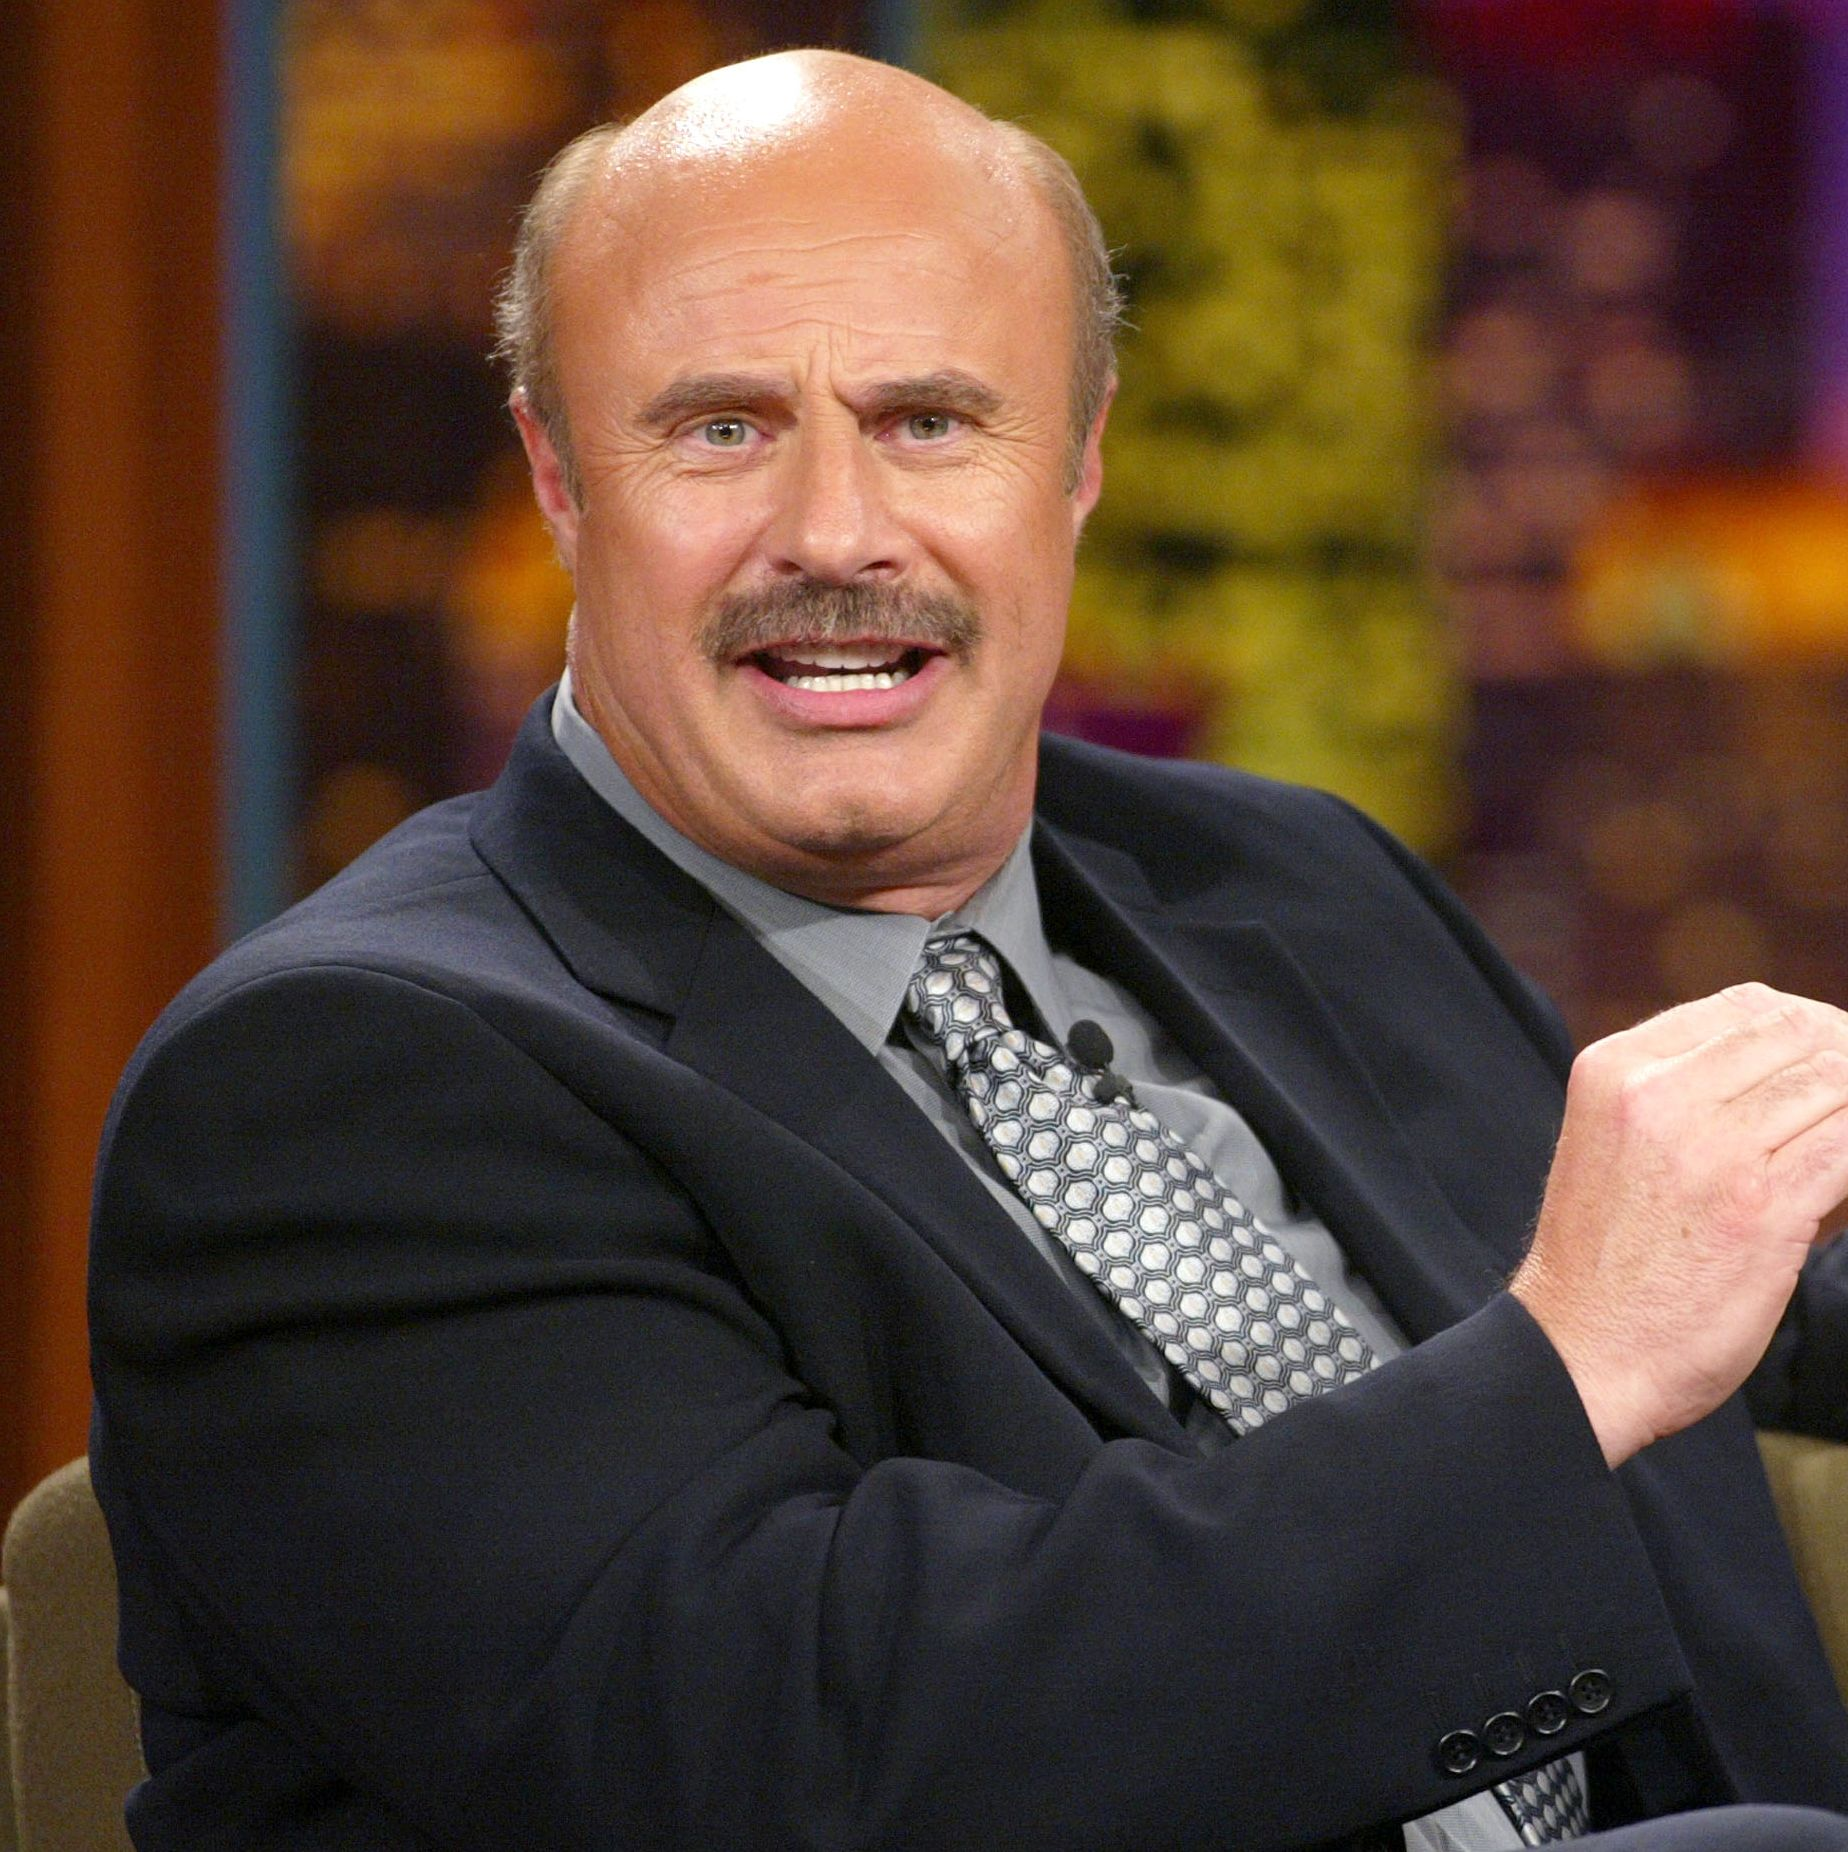 2002: Dr. Phil Bald heads and mustaches are a foolproof combo, which is why Dr. Phil has held onto this look throughout his career.